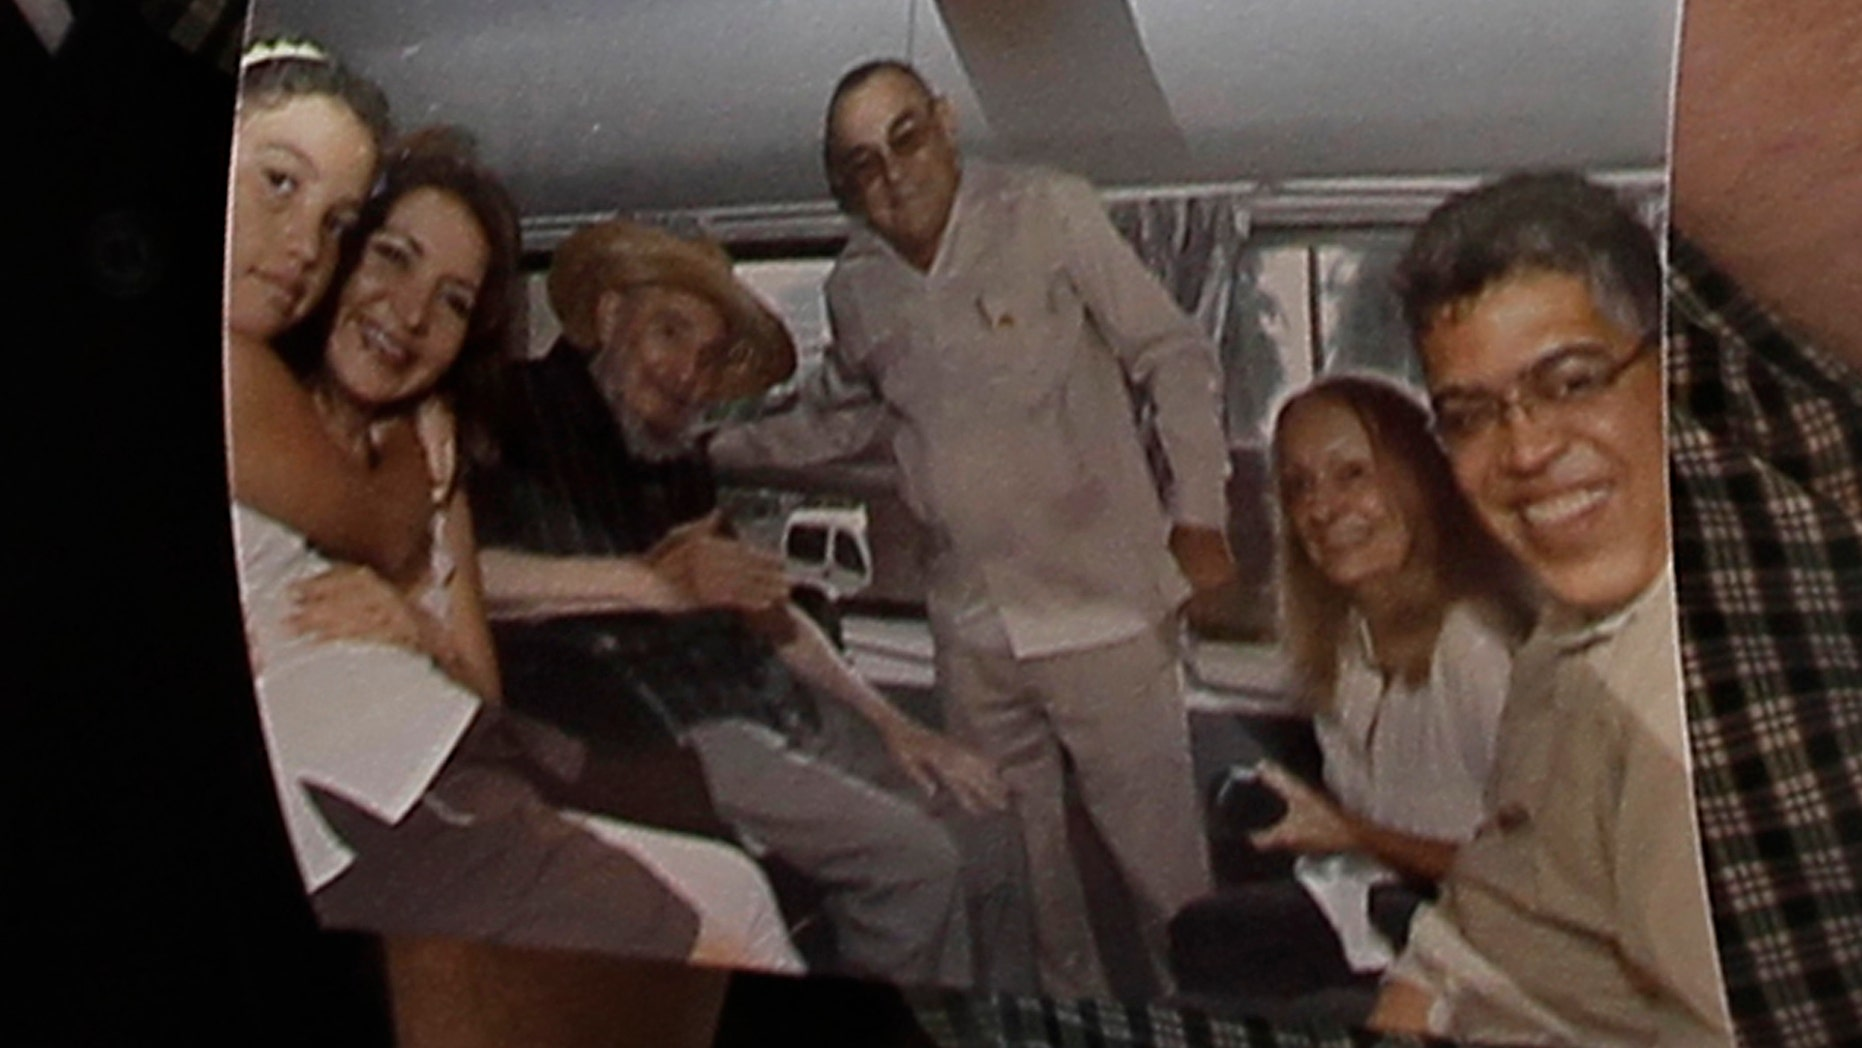 Former Venezuelan Vice President Elias Jaua shows a picture of Cuba's leader Fidel Castro,  third from left,  at the Hotel Nacional in Havana Sunday Oct. 21, 2012. According to Jaua, the picture was taken Saturday Oct. 20, 2012  inside a van outside the hotel. (AP Photo/Franklin Reyes)